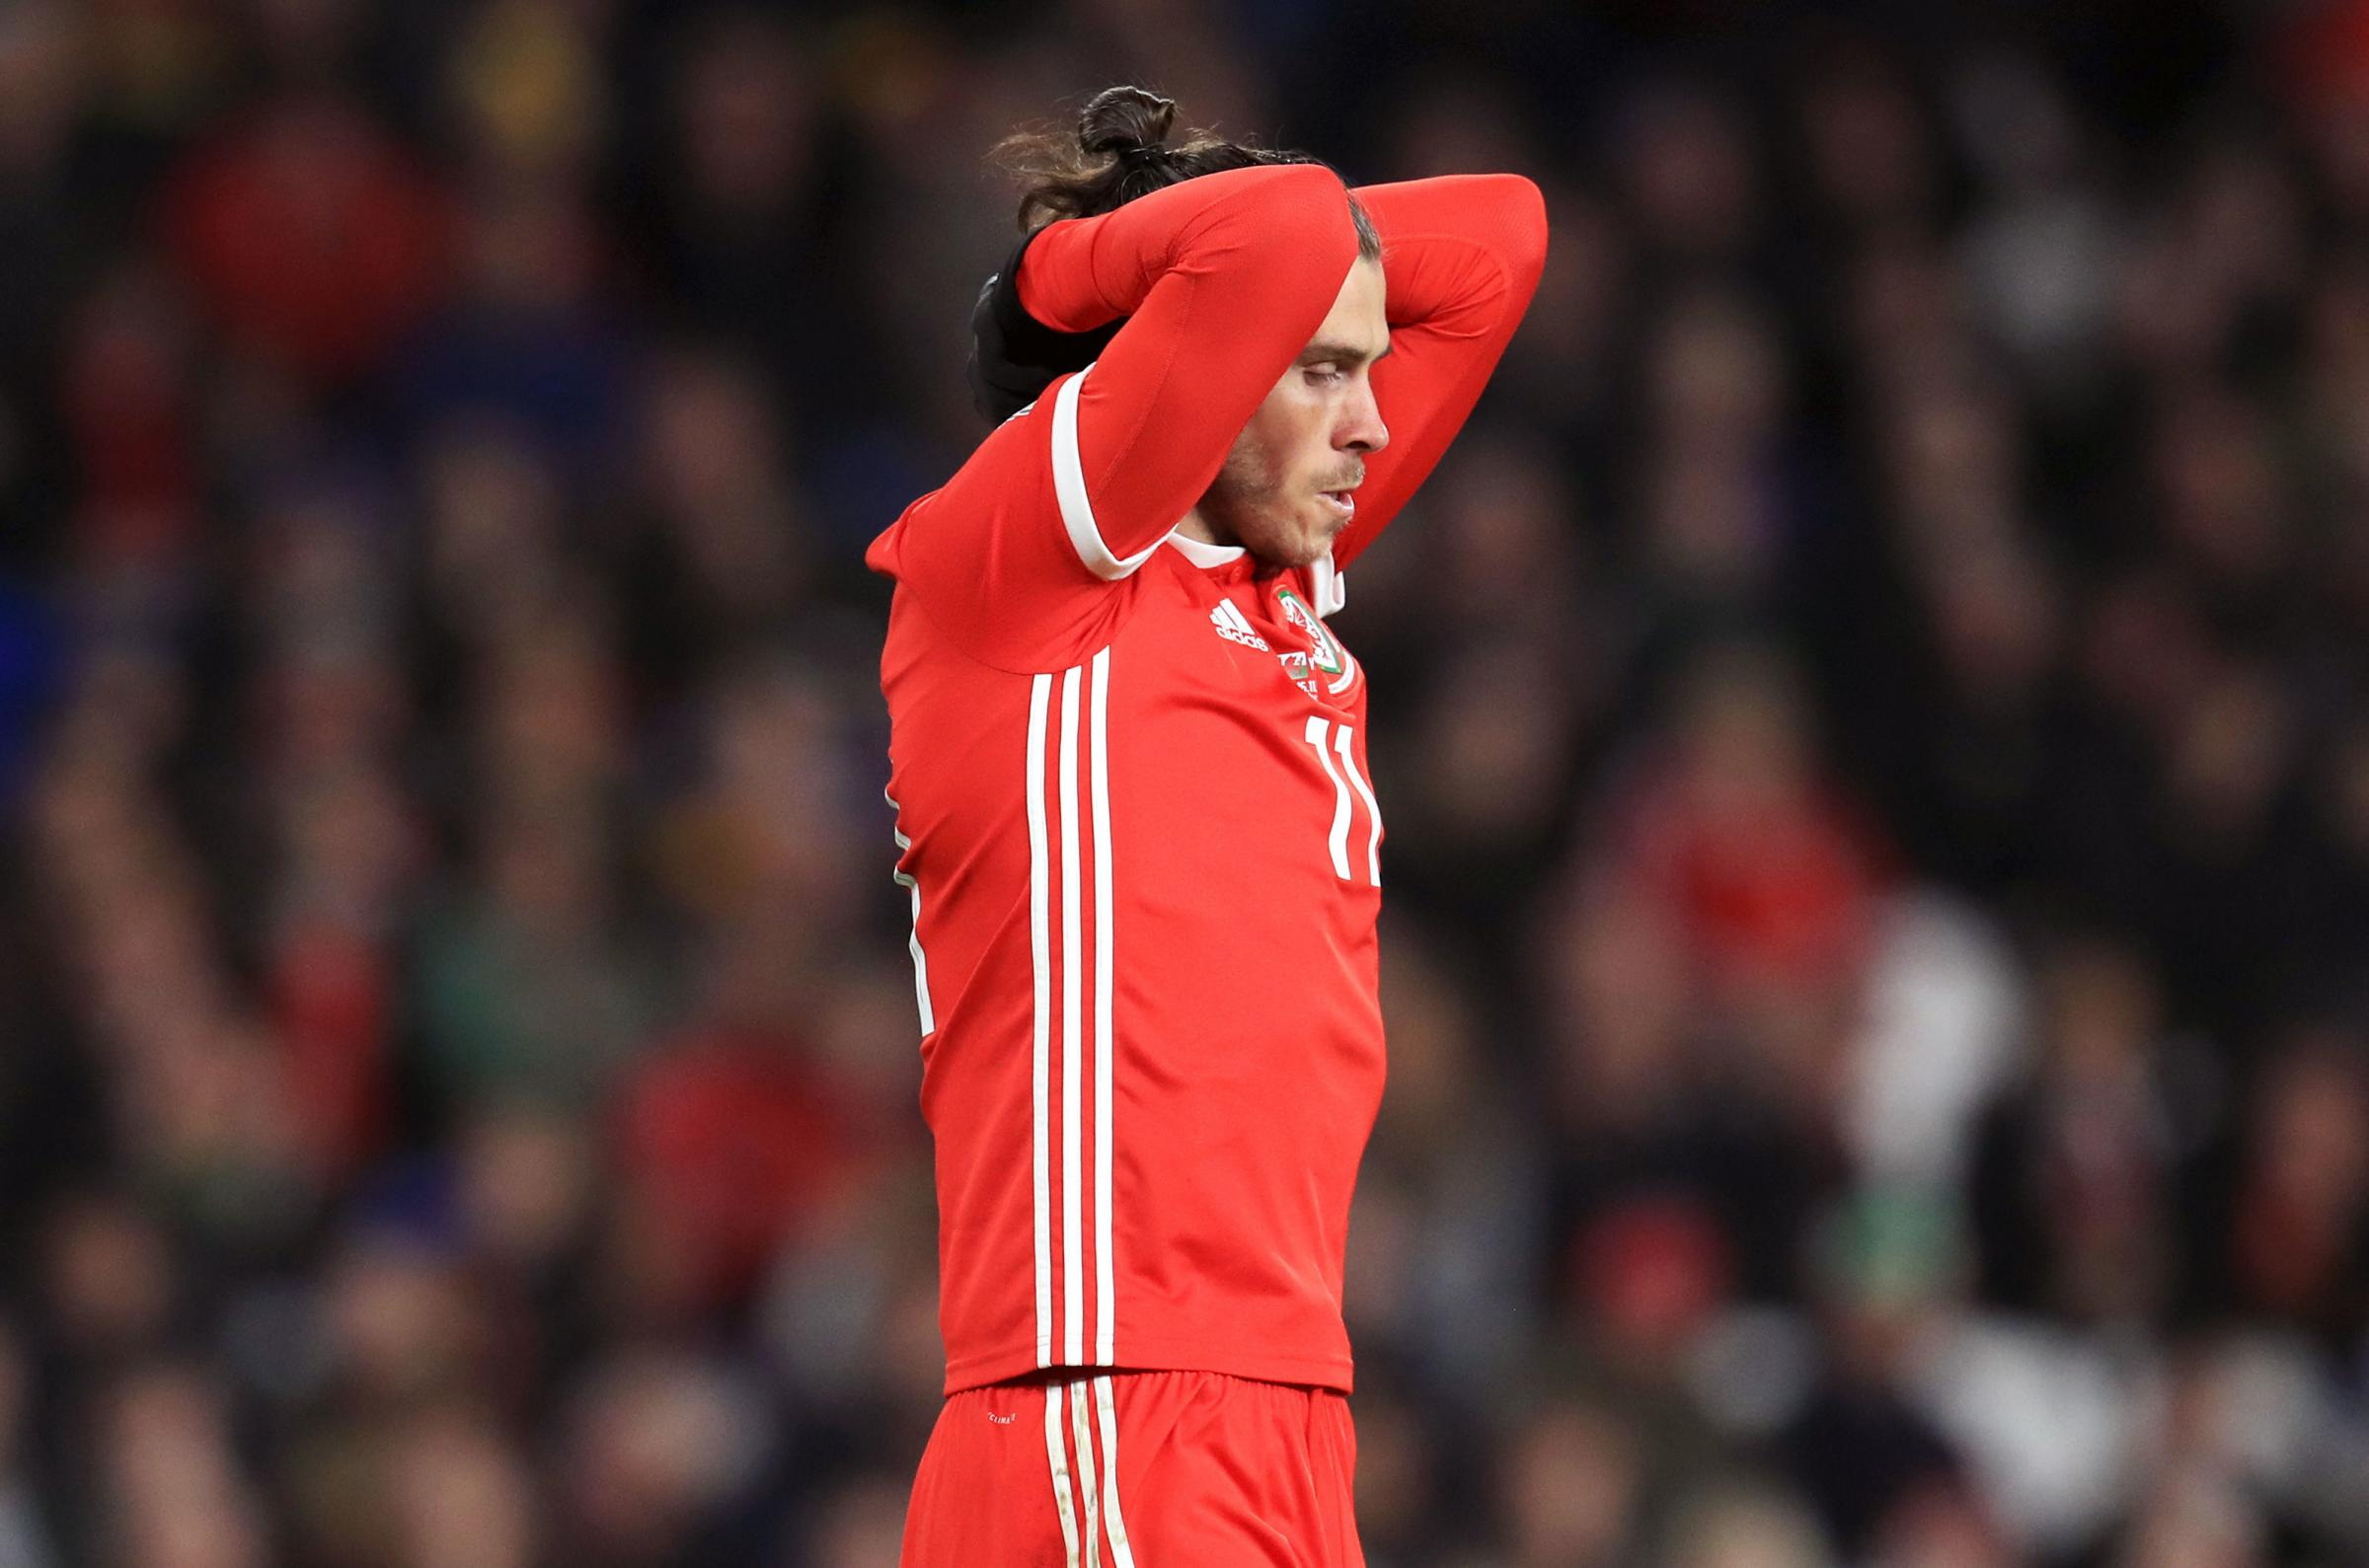 FRUSTRATION: Gareth Bale scored but was on the losing side